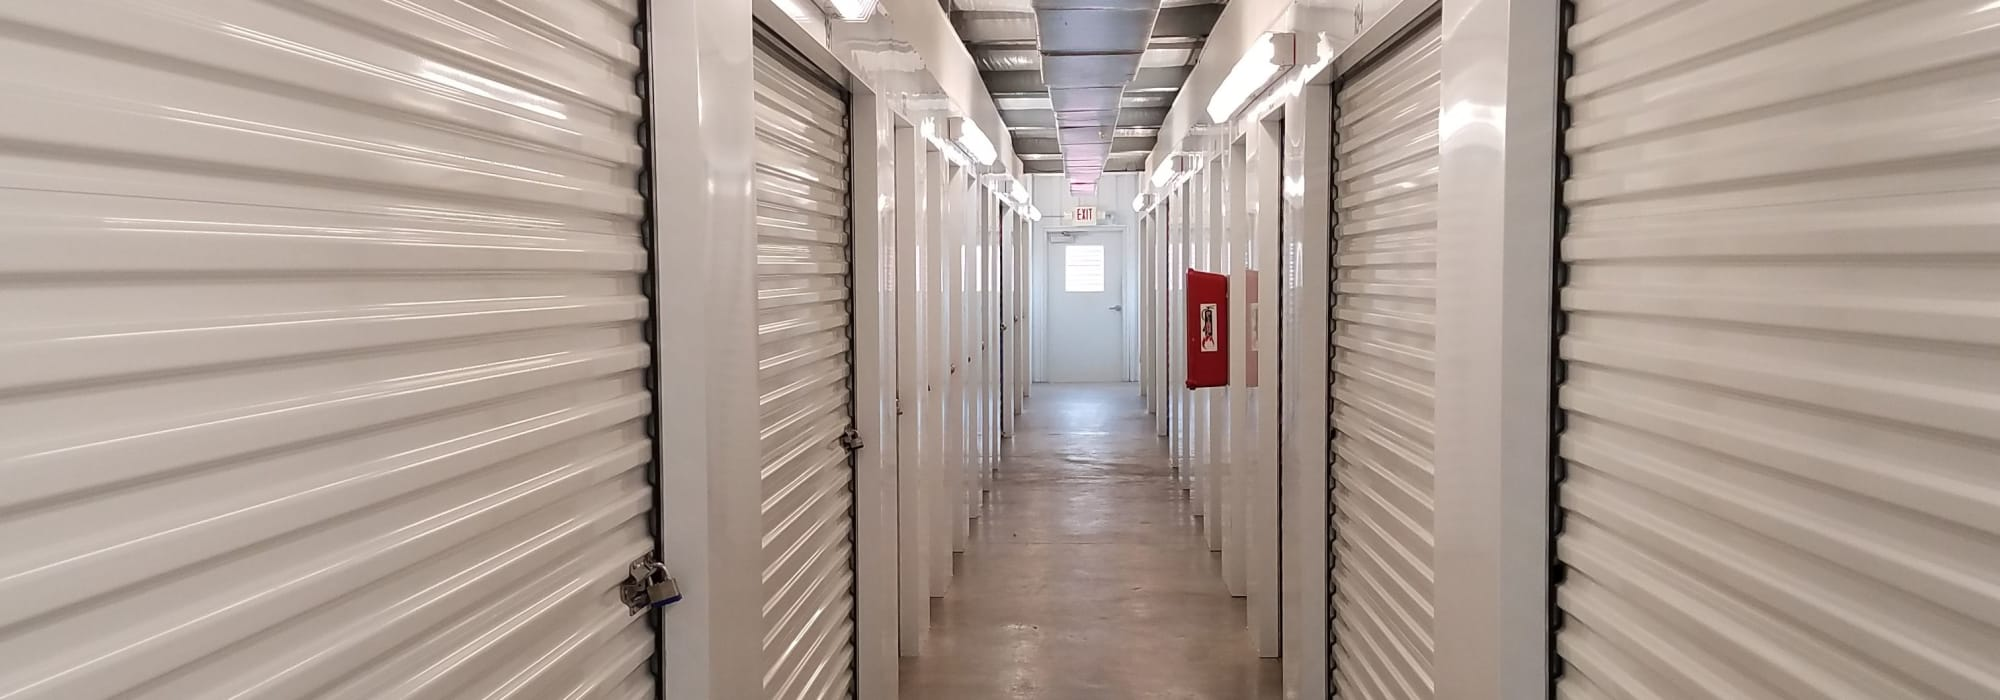 Self storage in Bonaire GA